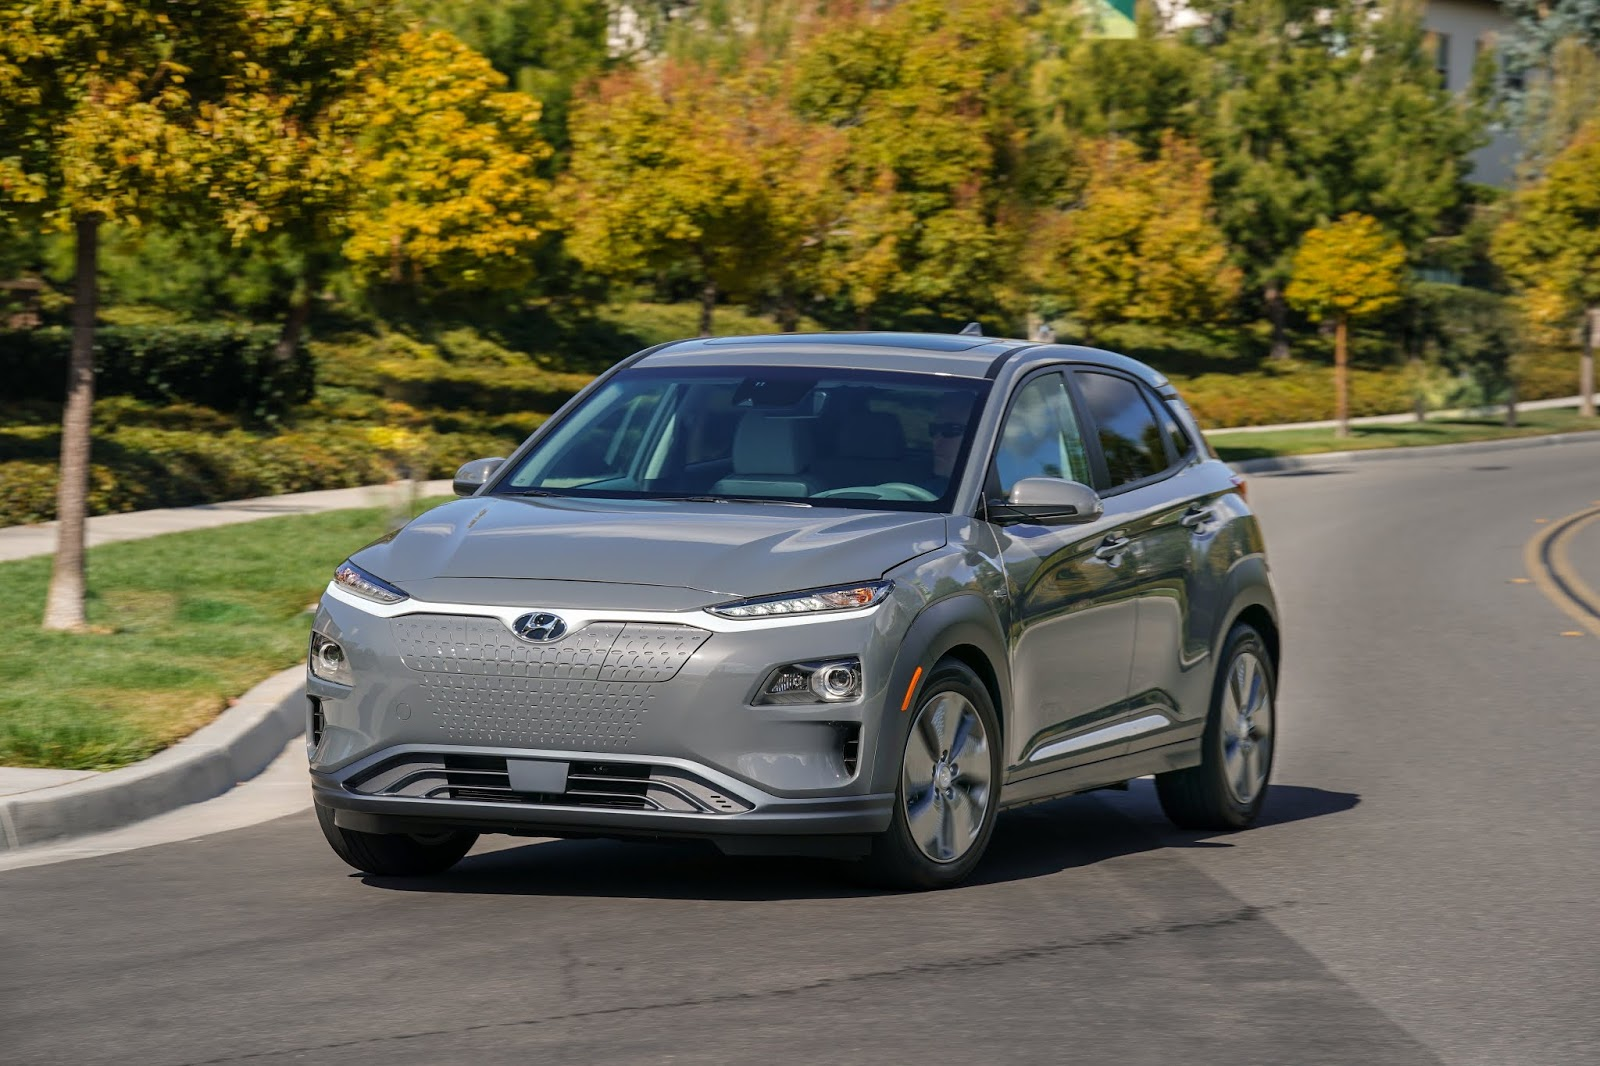 Hyundai Kona Electric: Top 10 Things To Know About India's First Long-range Electric SUV | VANDI4U